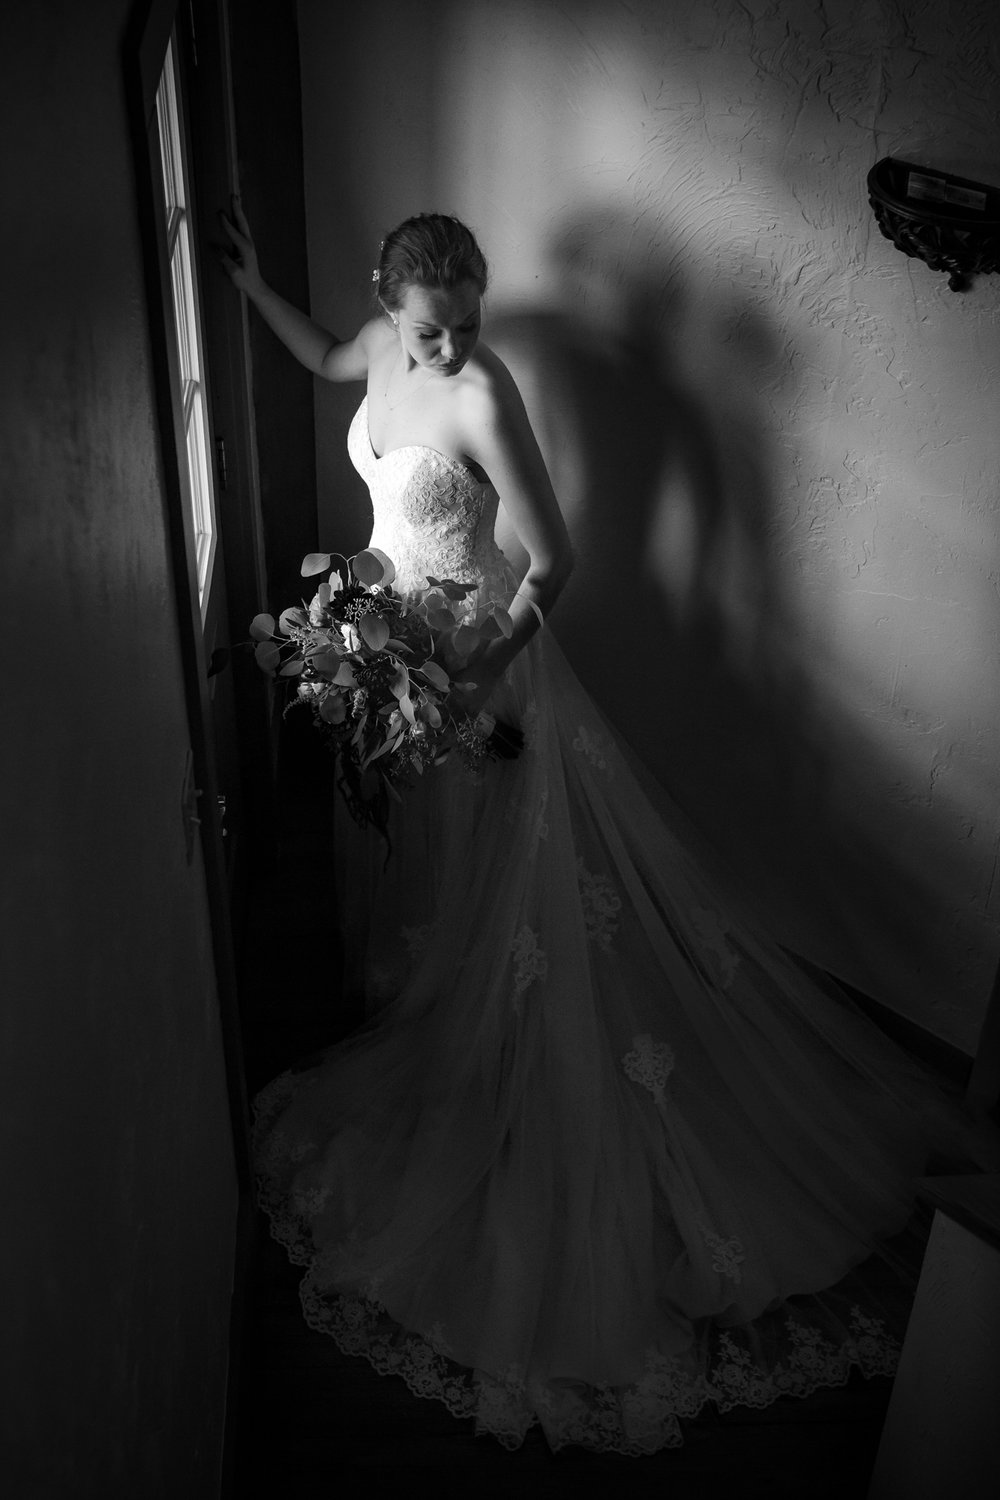 Chantelle-Marie-Auburn-NY-Wedding-6627.jpg